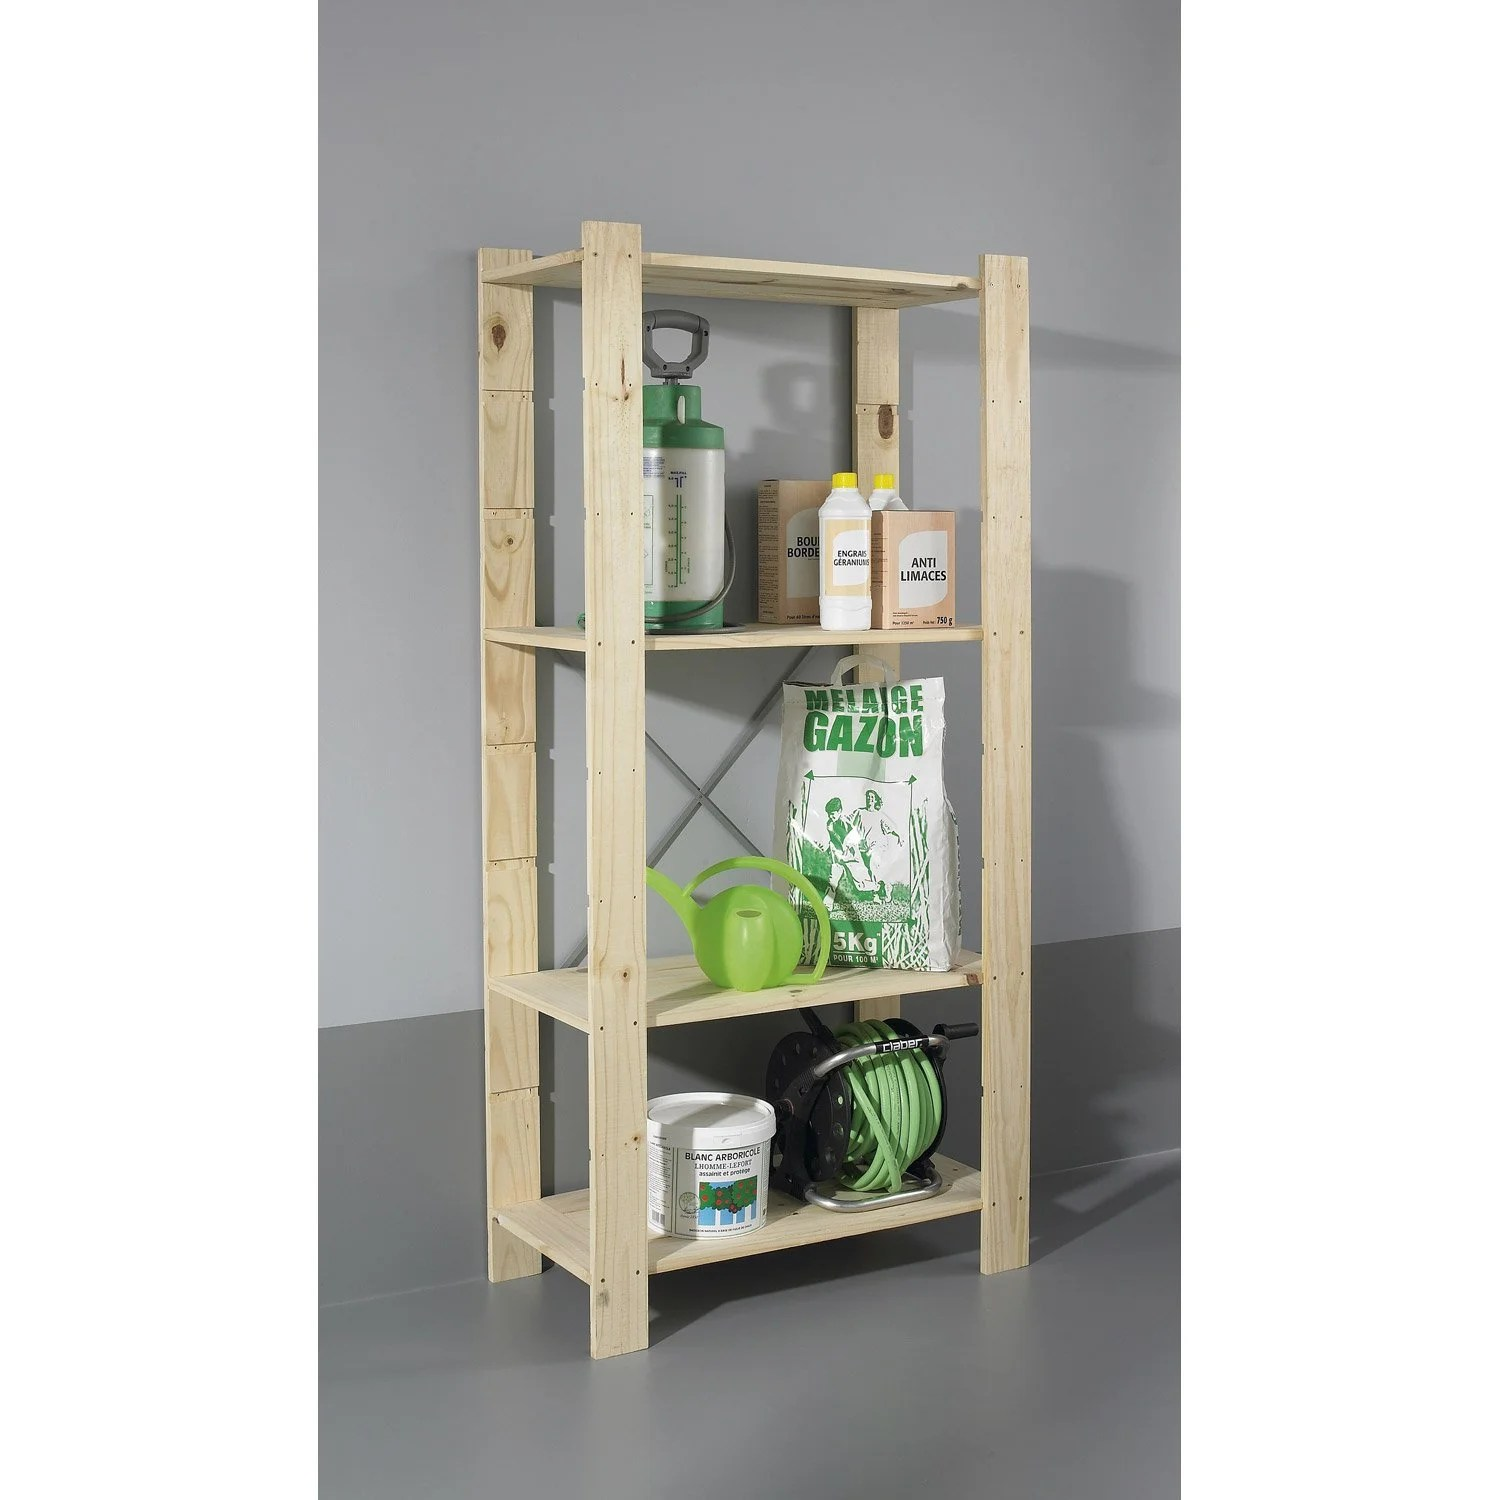 Etagere Pin Leroy Merlin Etagère En Pin 4 Tablettes Modèle Spacea L82xh170xp40cm